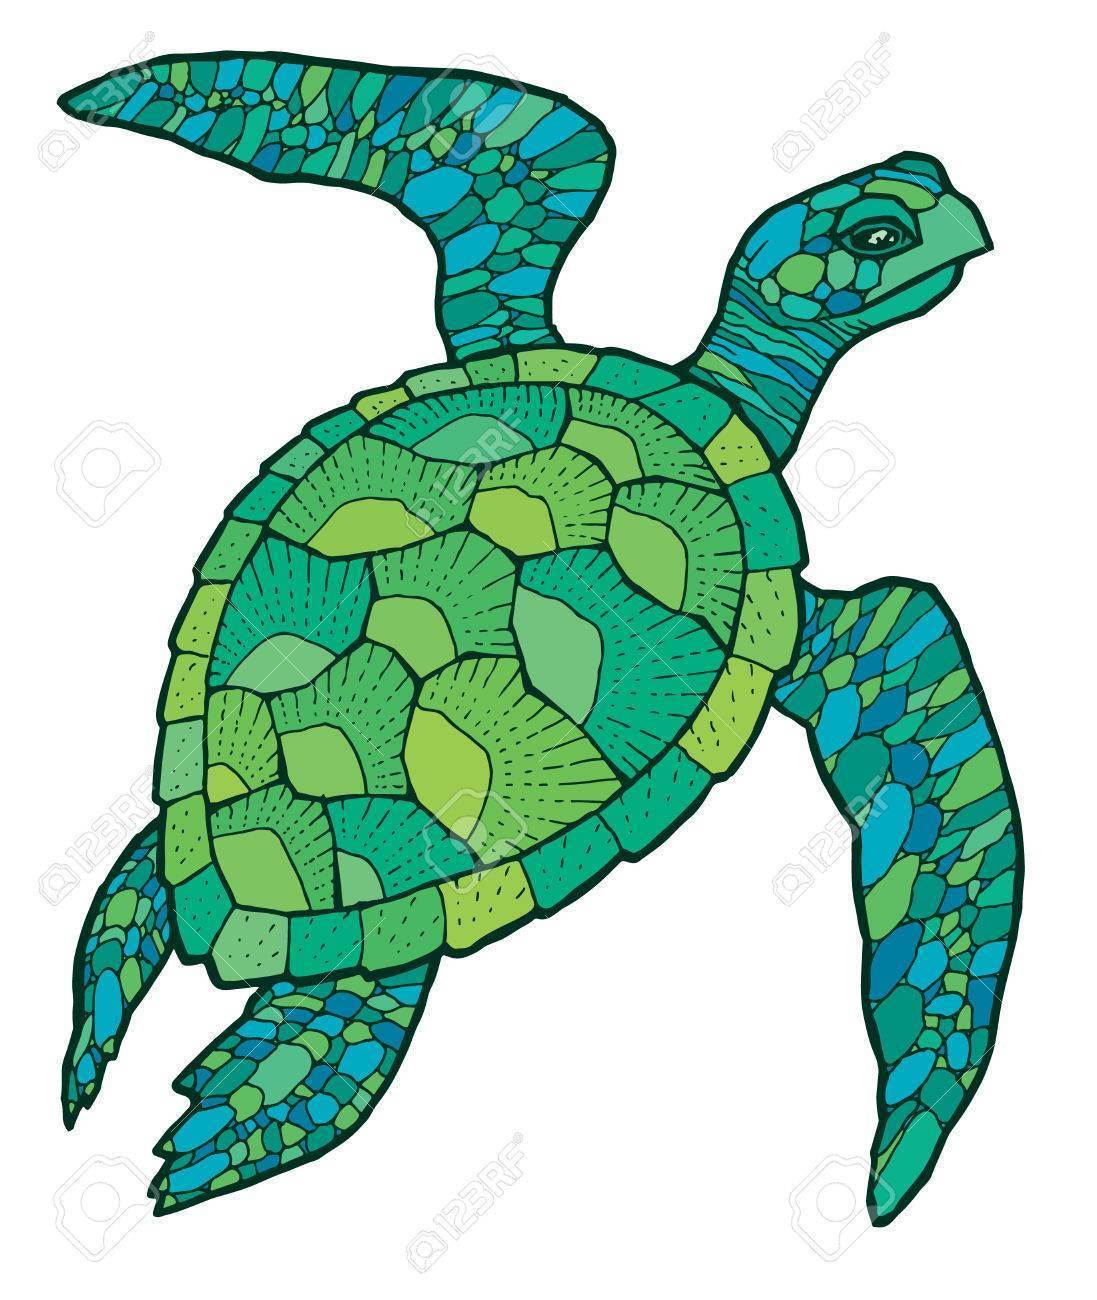 Turtle vector clipart transparent stock Sea turtle – vector stylized drawing » Clipart Portal transparent stock